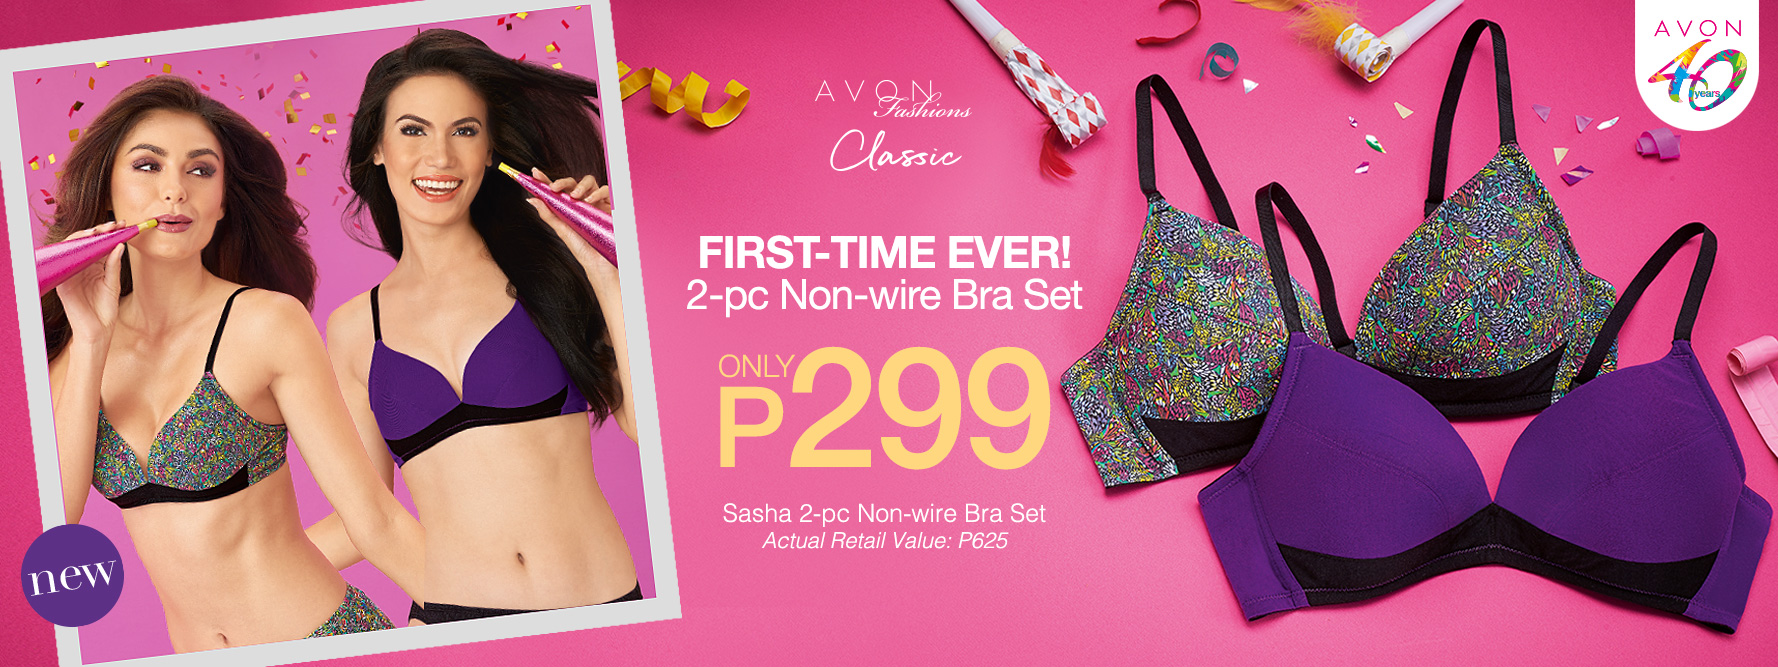 Score the Sasha Bra for P299 only!